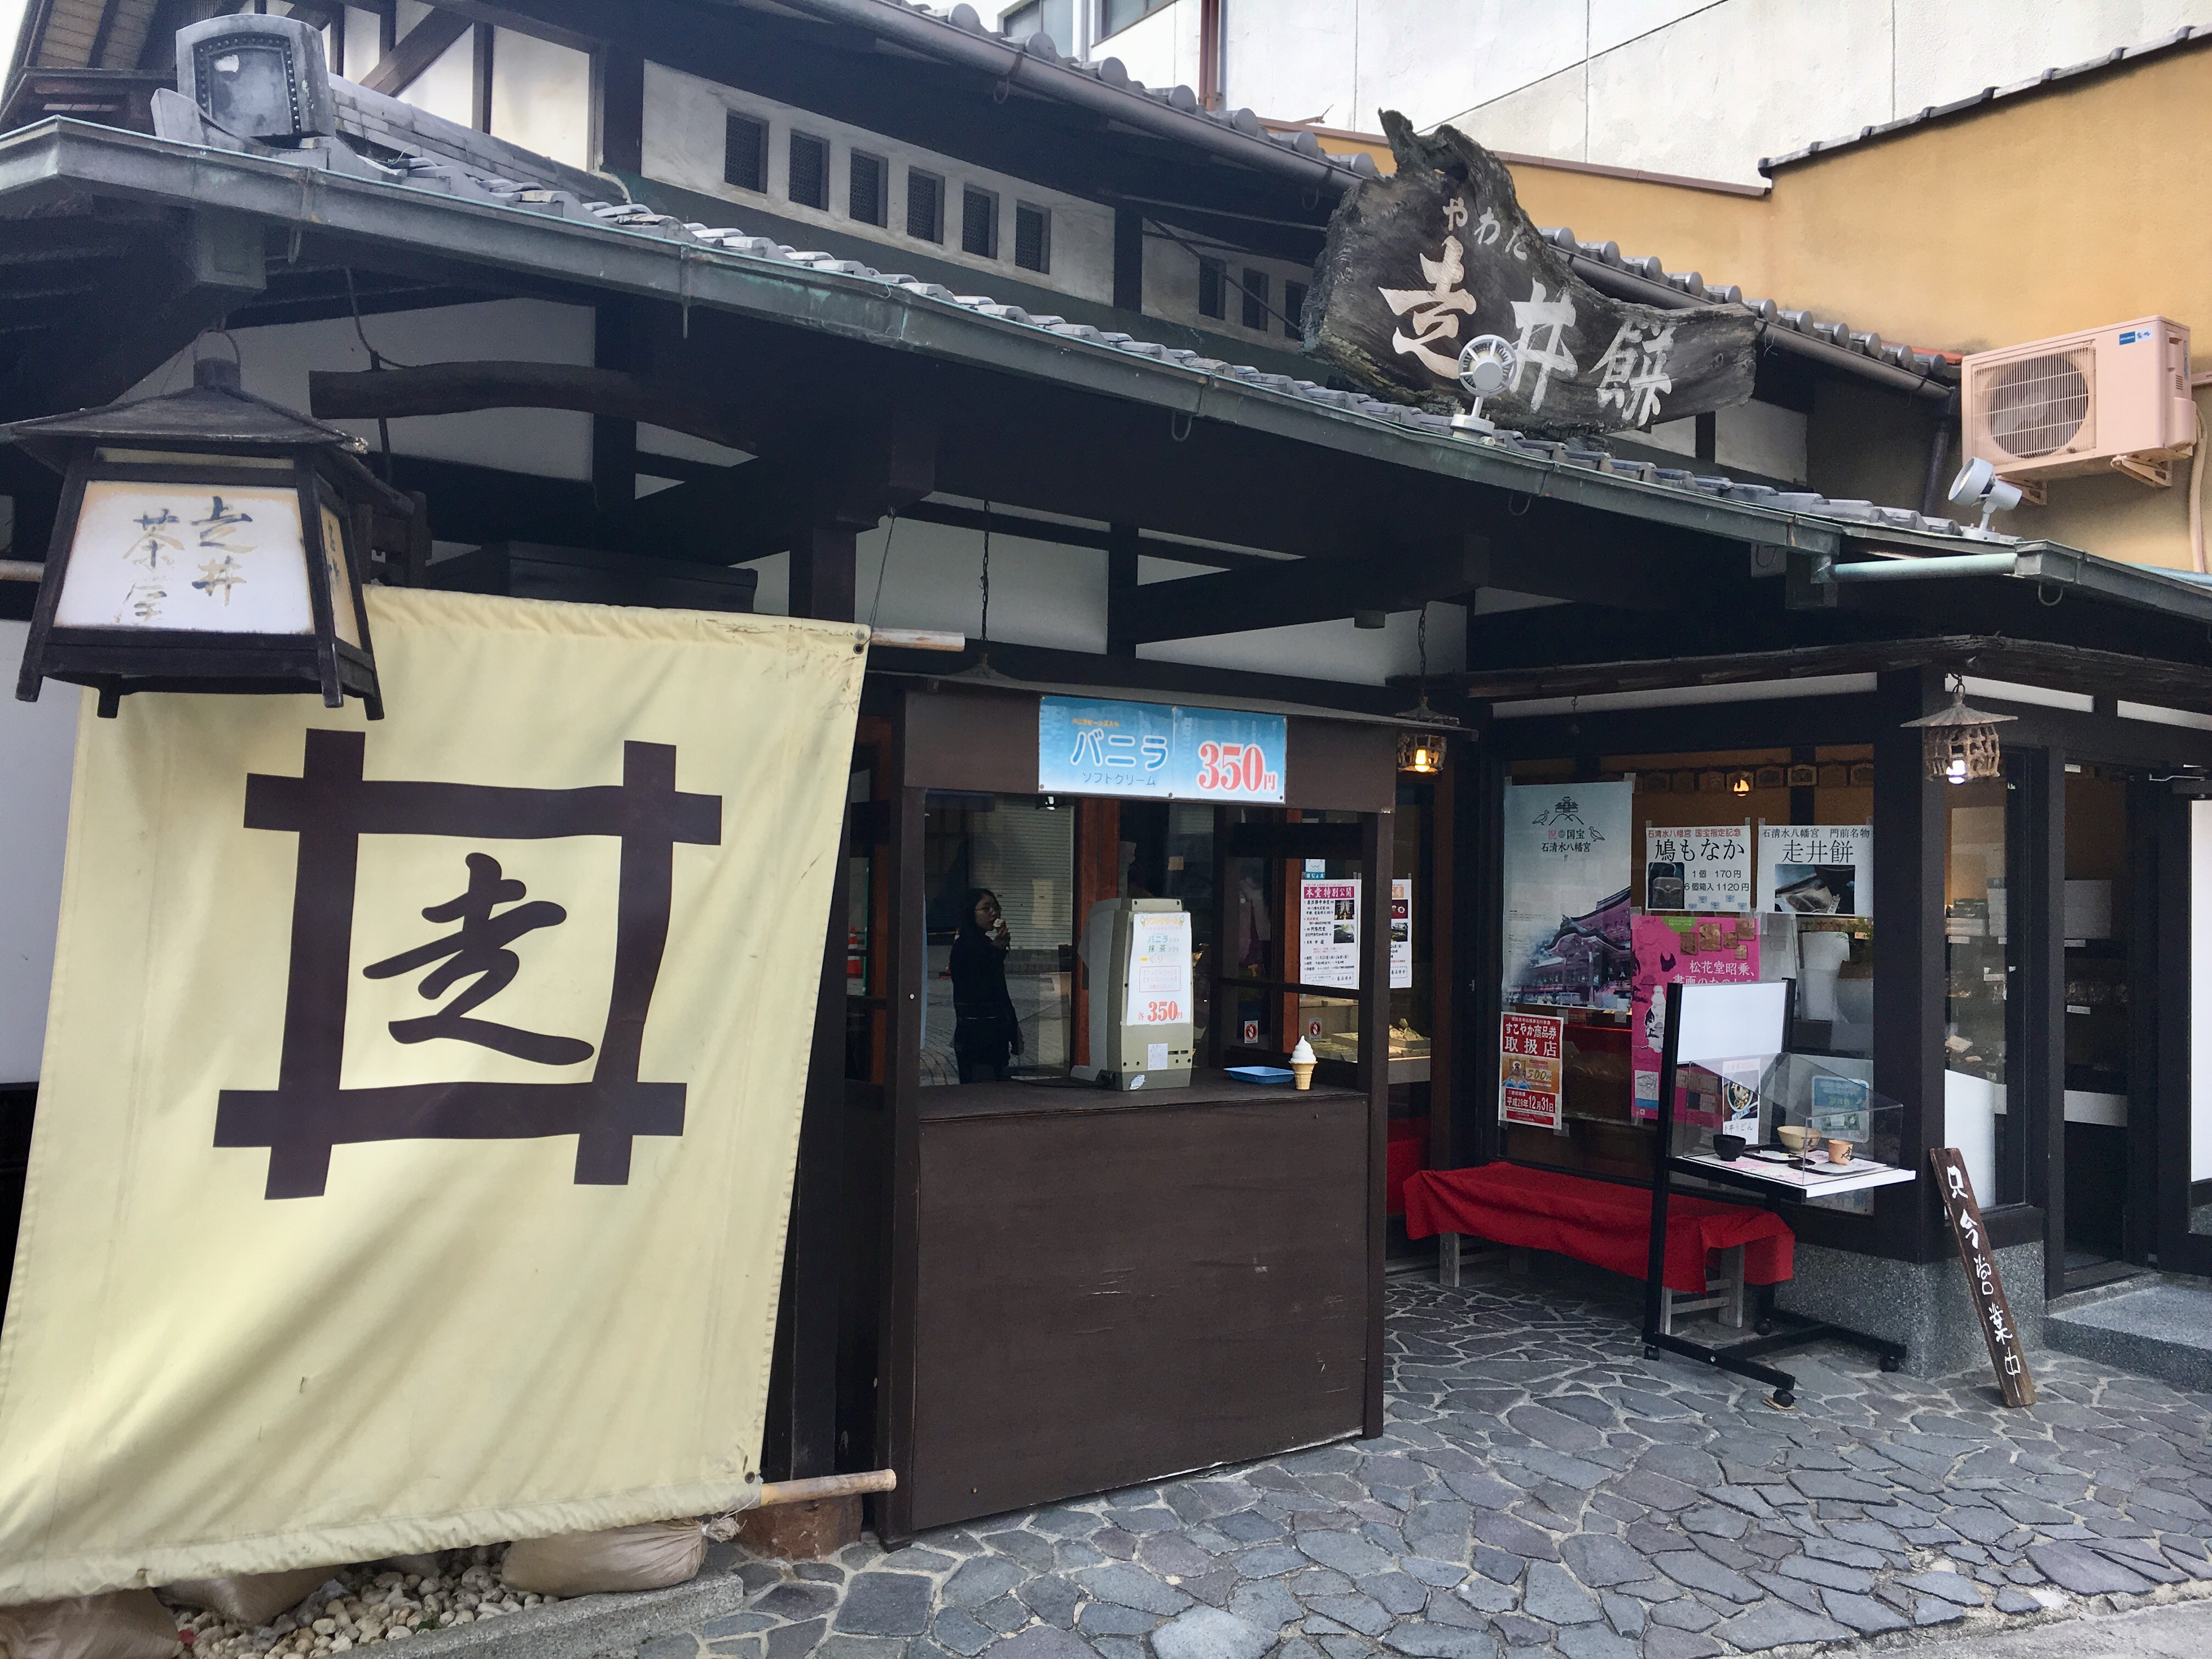 old fashioned Japanese restaurant with dark wood fixtures and large cloth sign